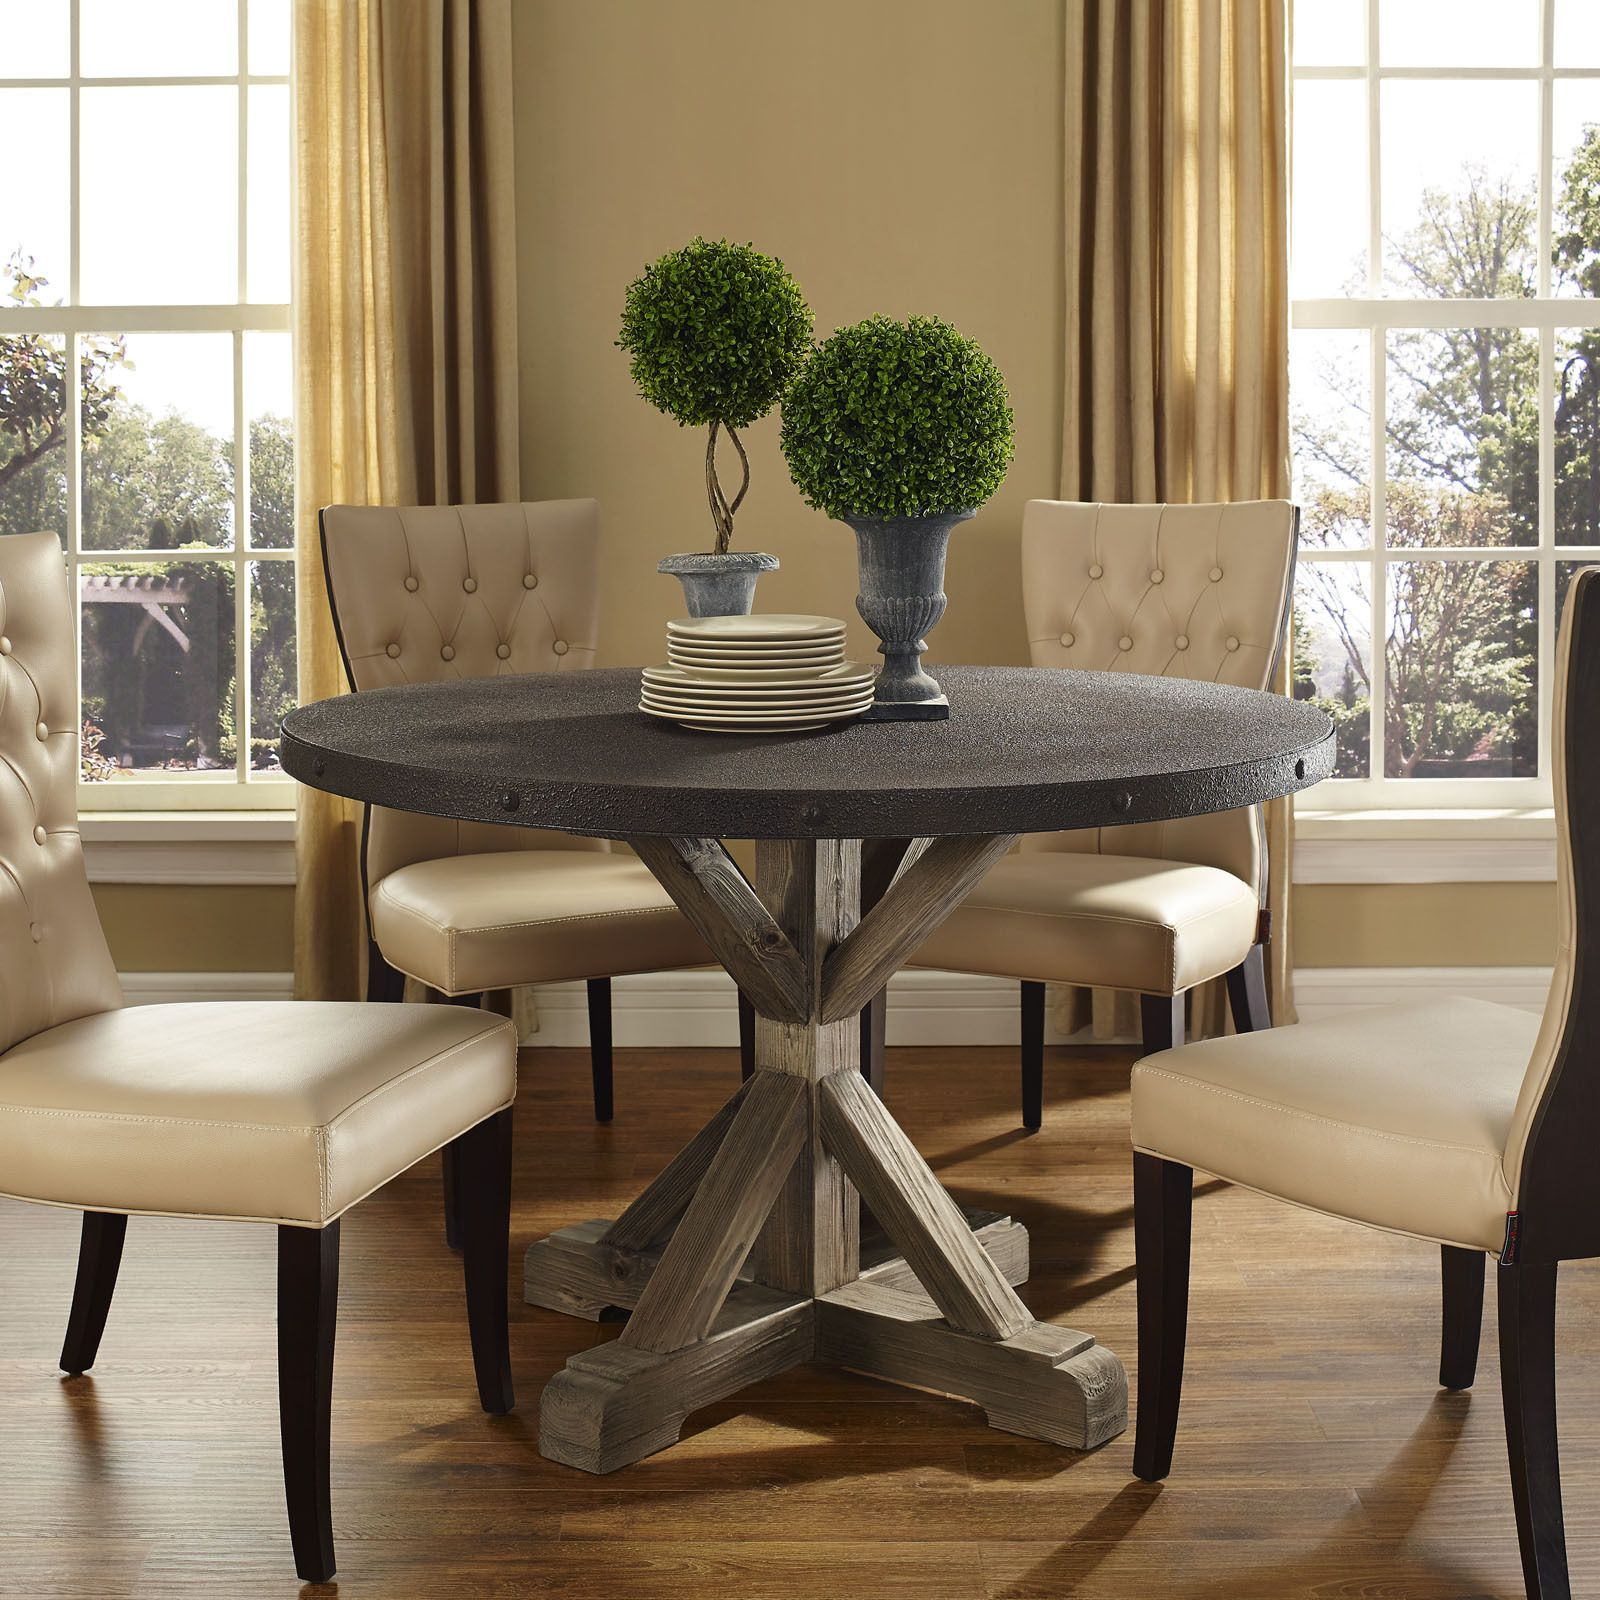 stitch wood top dining table overstock shopping great deals on